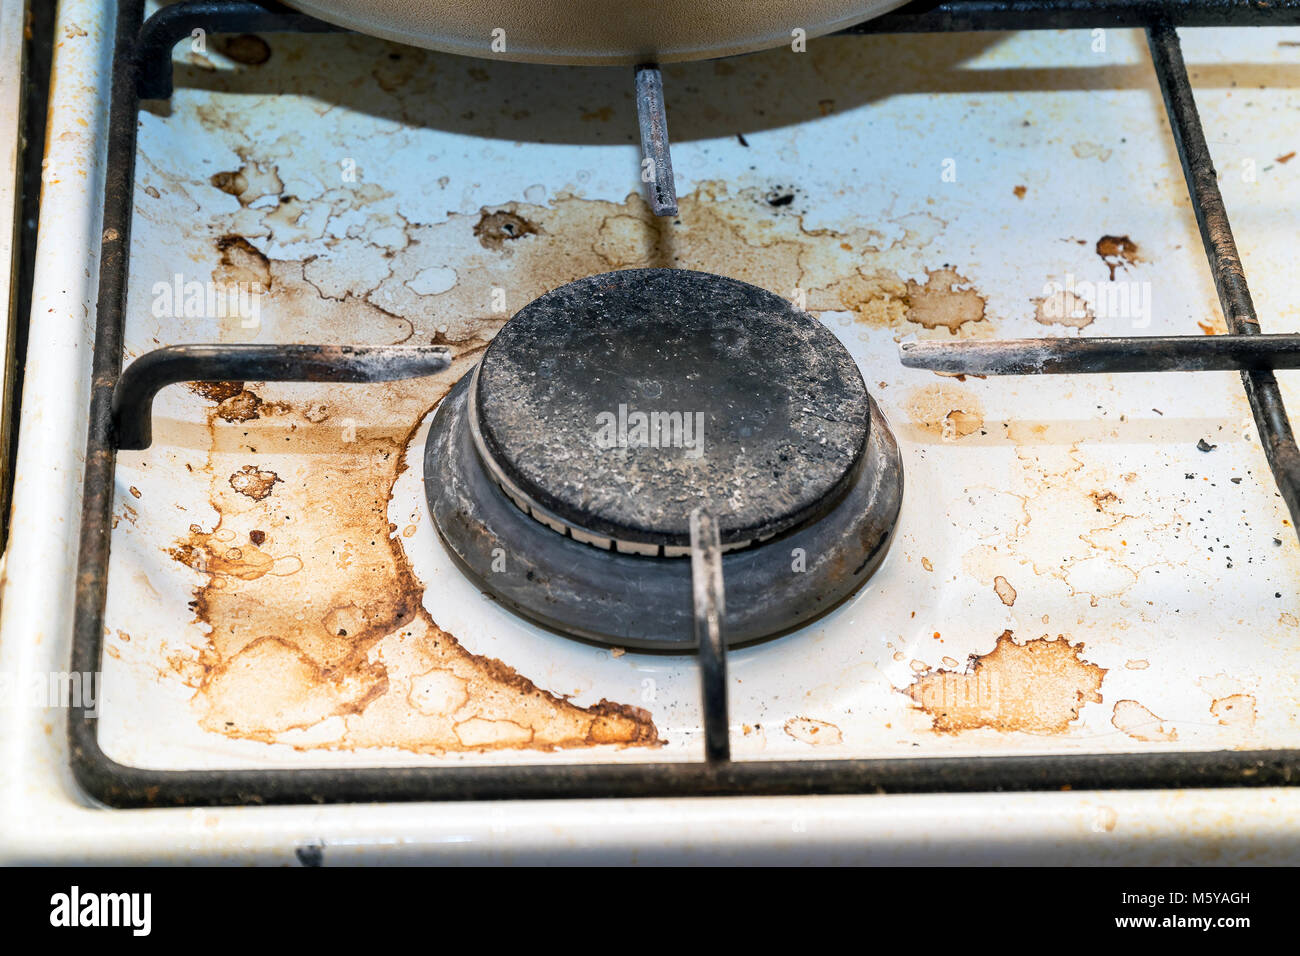 Dirty burner gas stove in the kitchen Stock Photo